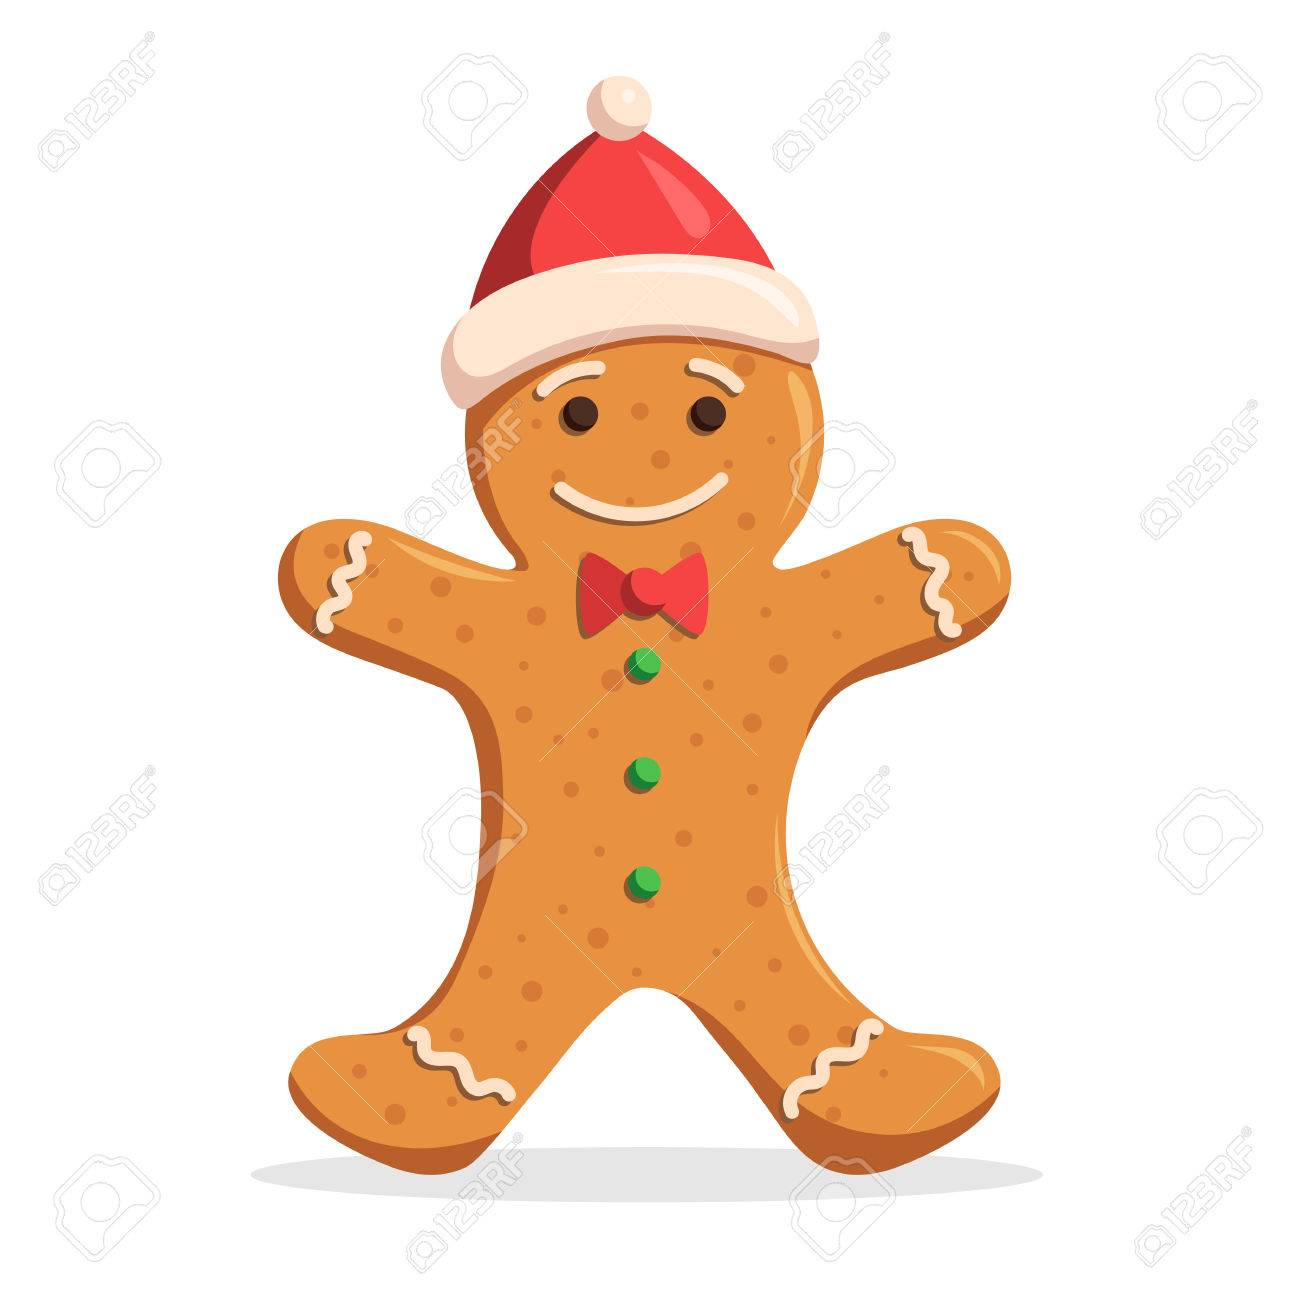 gingerbread man christmas decorations frosting in a santa hat vector illustration isolated on white background